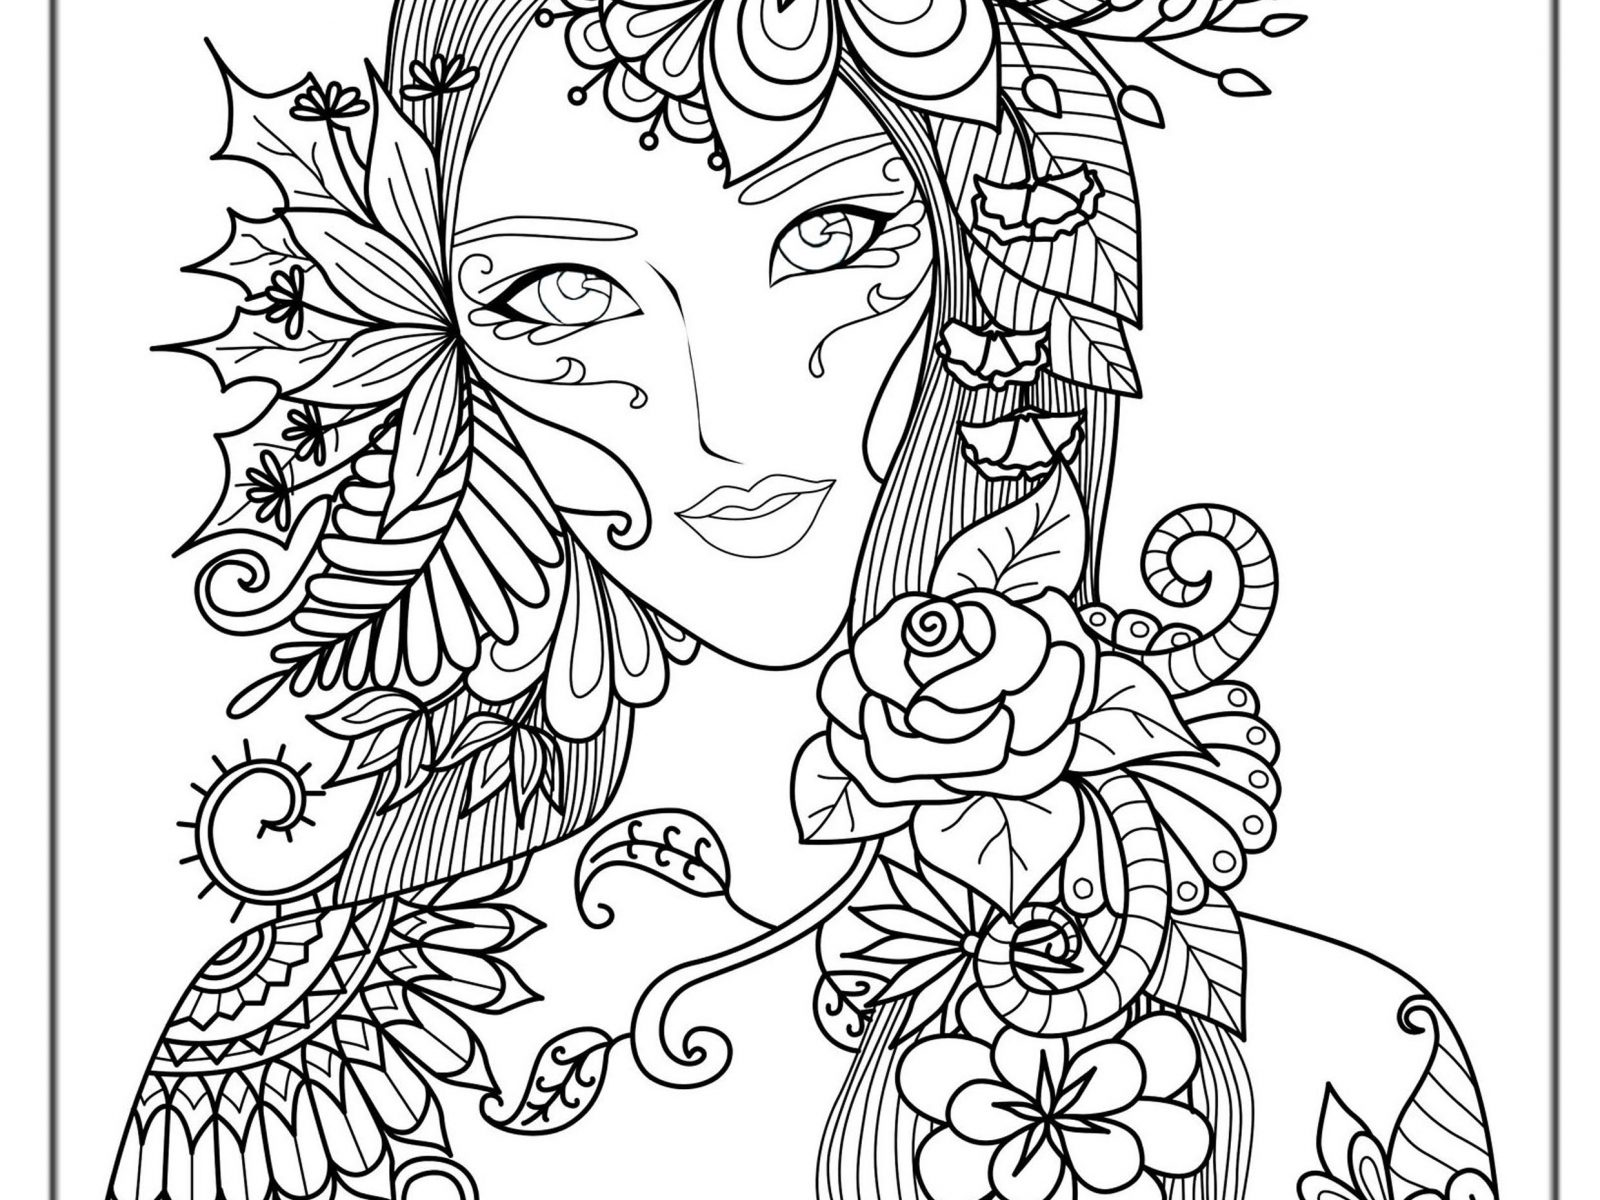 coloring worksheets hard difficult christmas coloring pages for adults at hard worksheets coloring